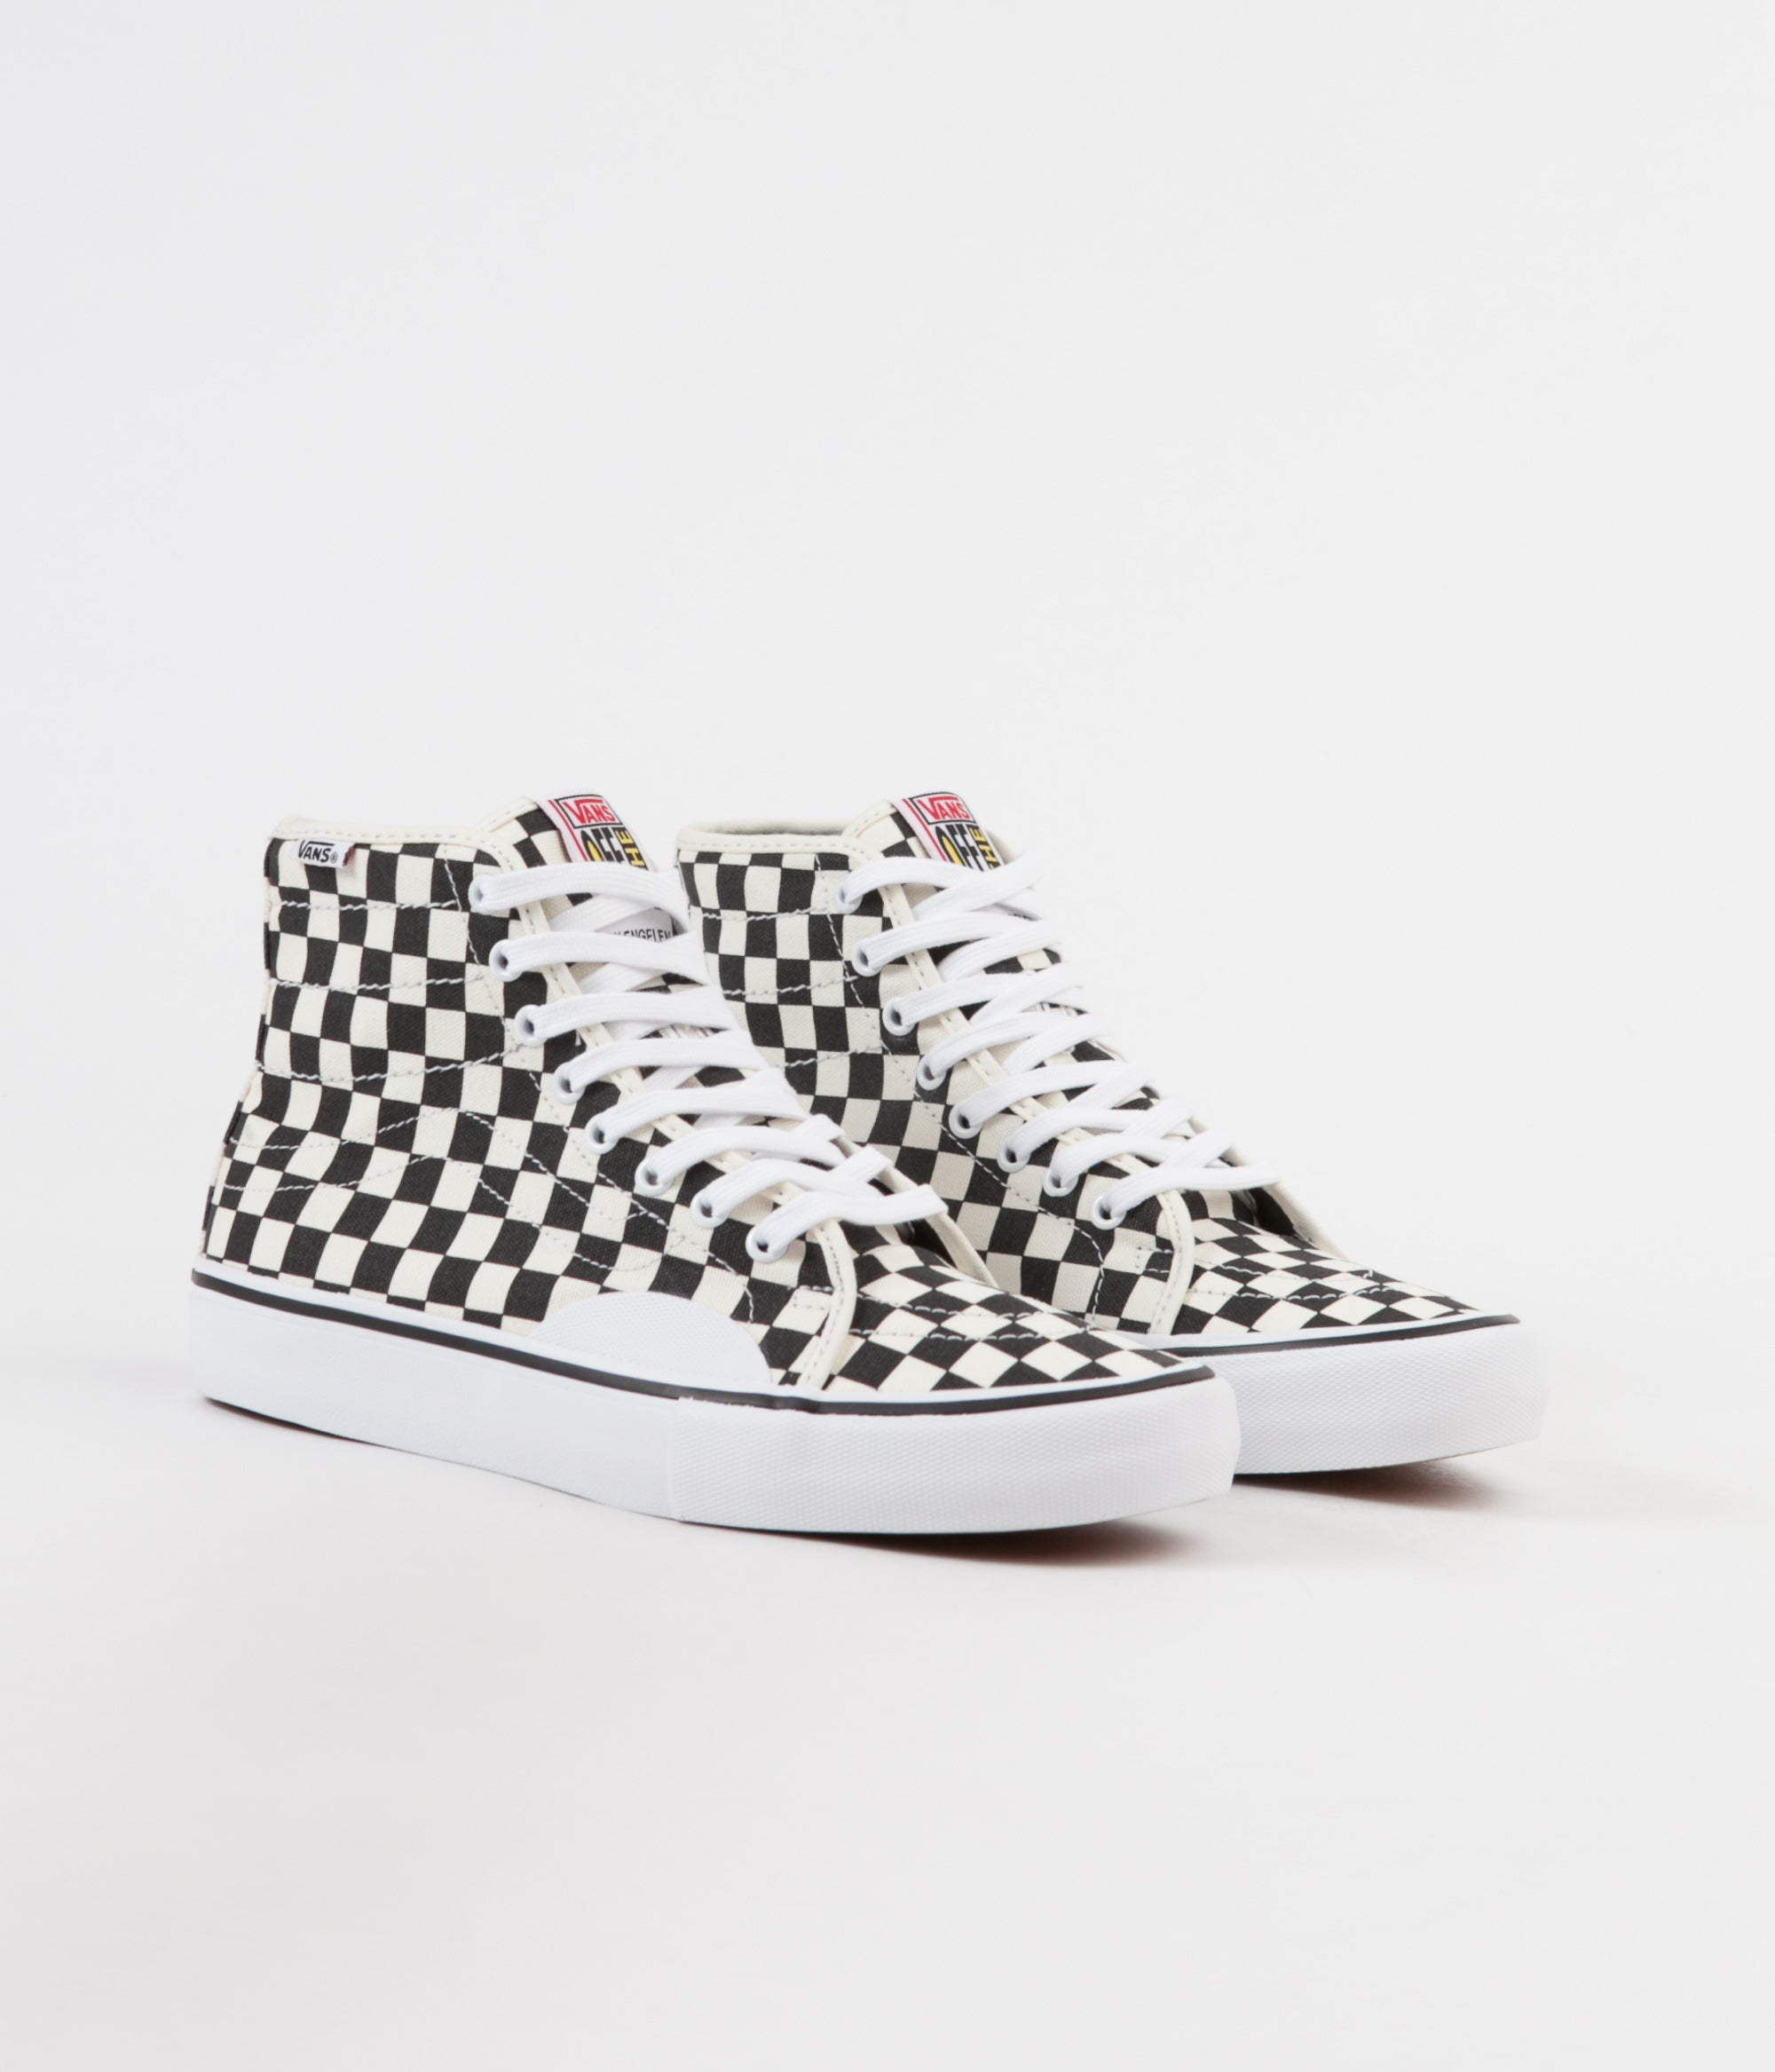 2e9d0ca909 ... Vans AV Classic High Checkerboard Shoes - Black   White ...